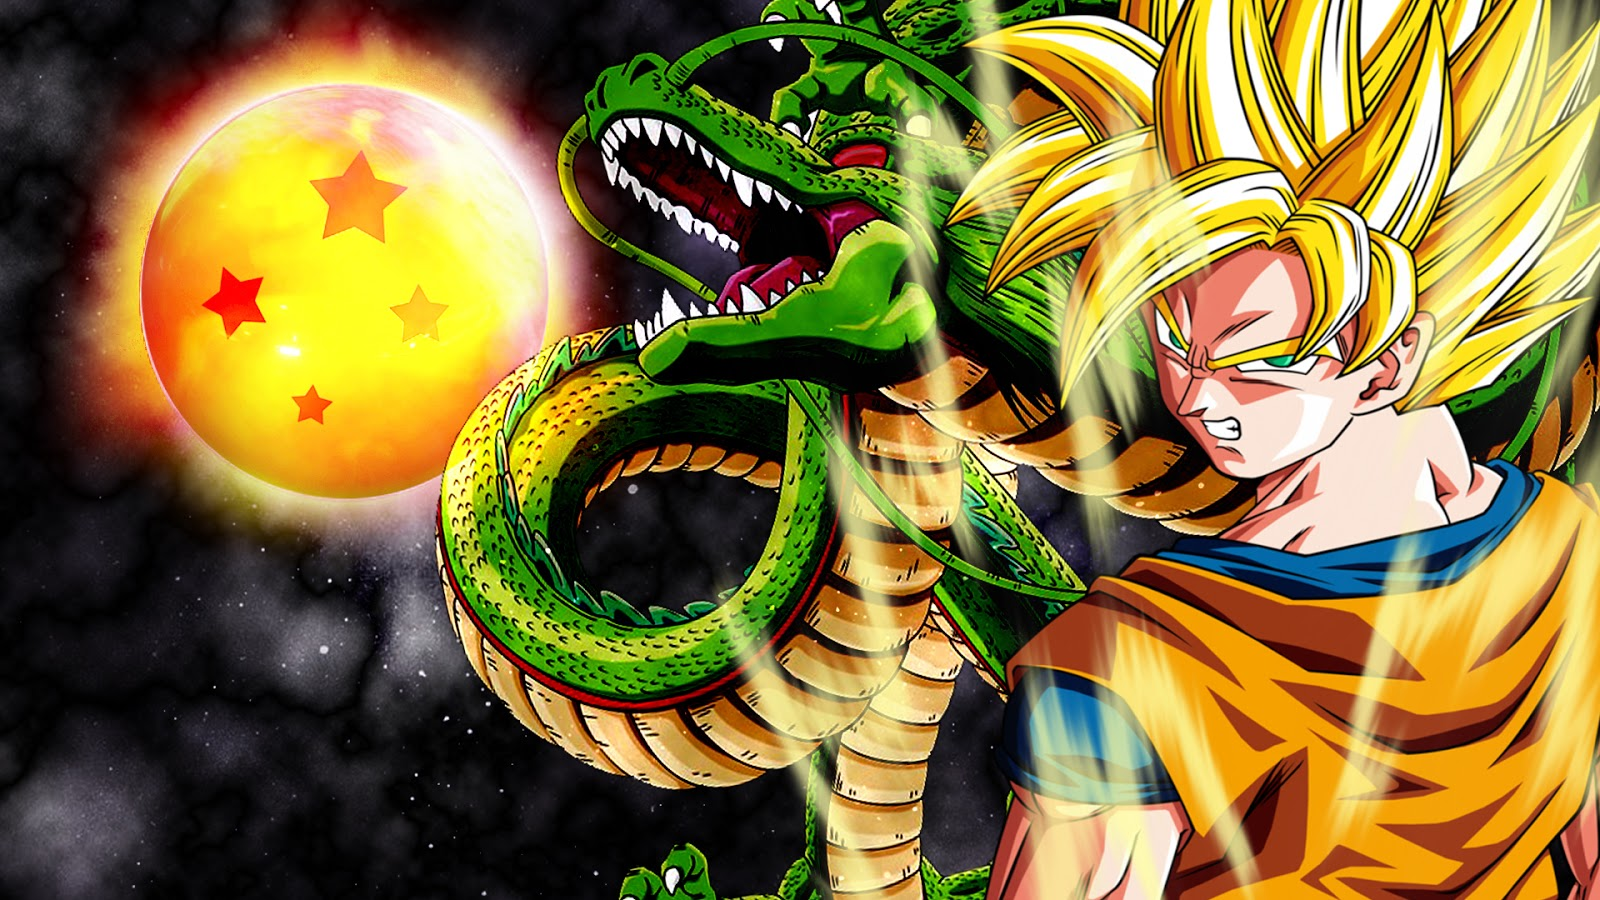 Wallpapers HD Dragon Ball Gt Z Full HD Wallpapers 1600x900